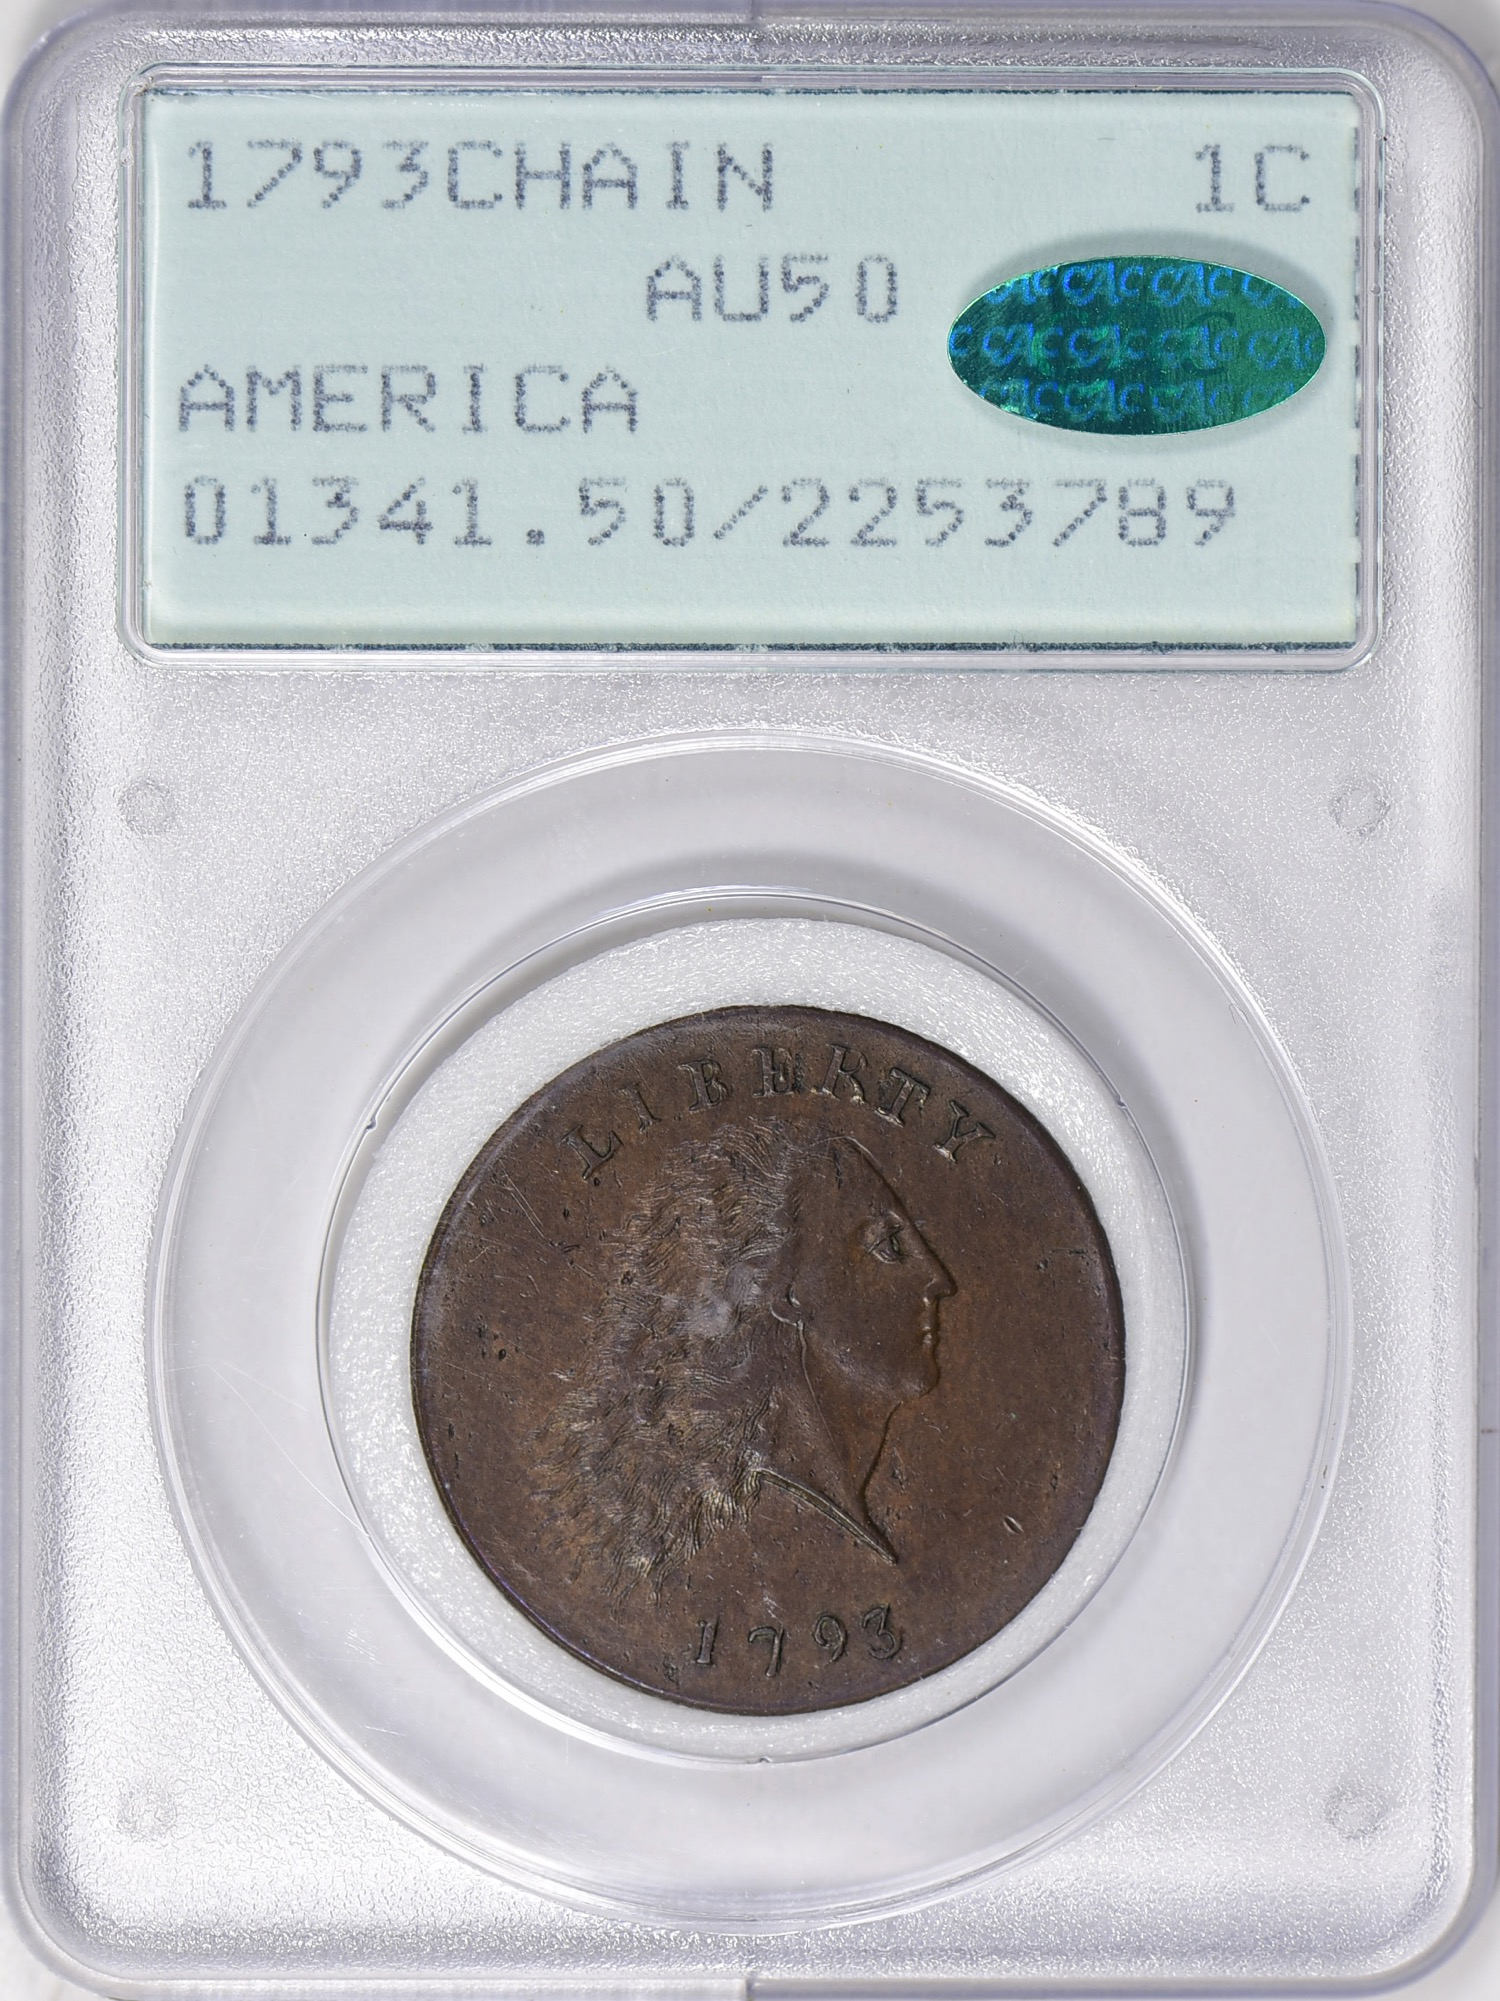 main image for GreatCollections Ultimate Auction Realizes $3 Million